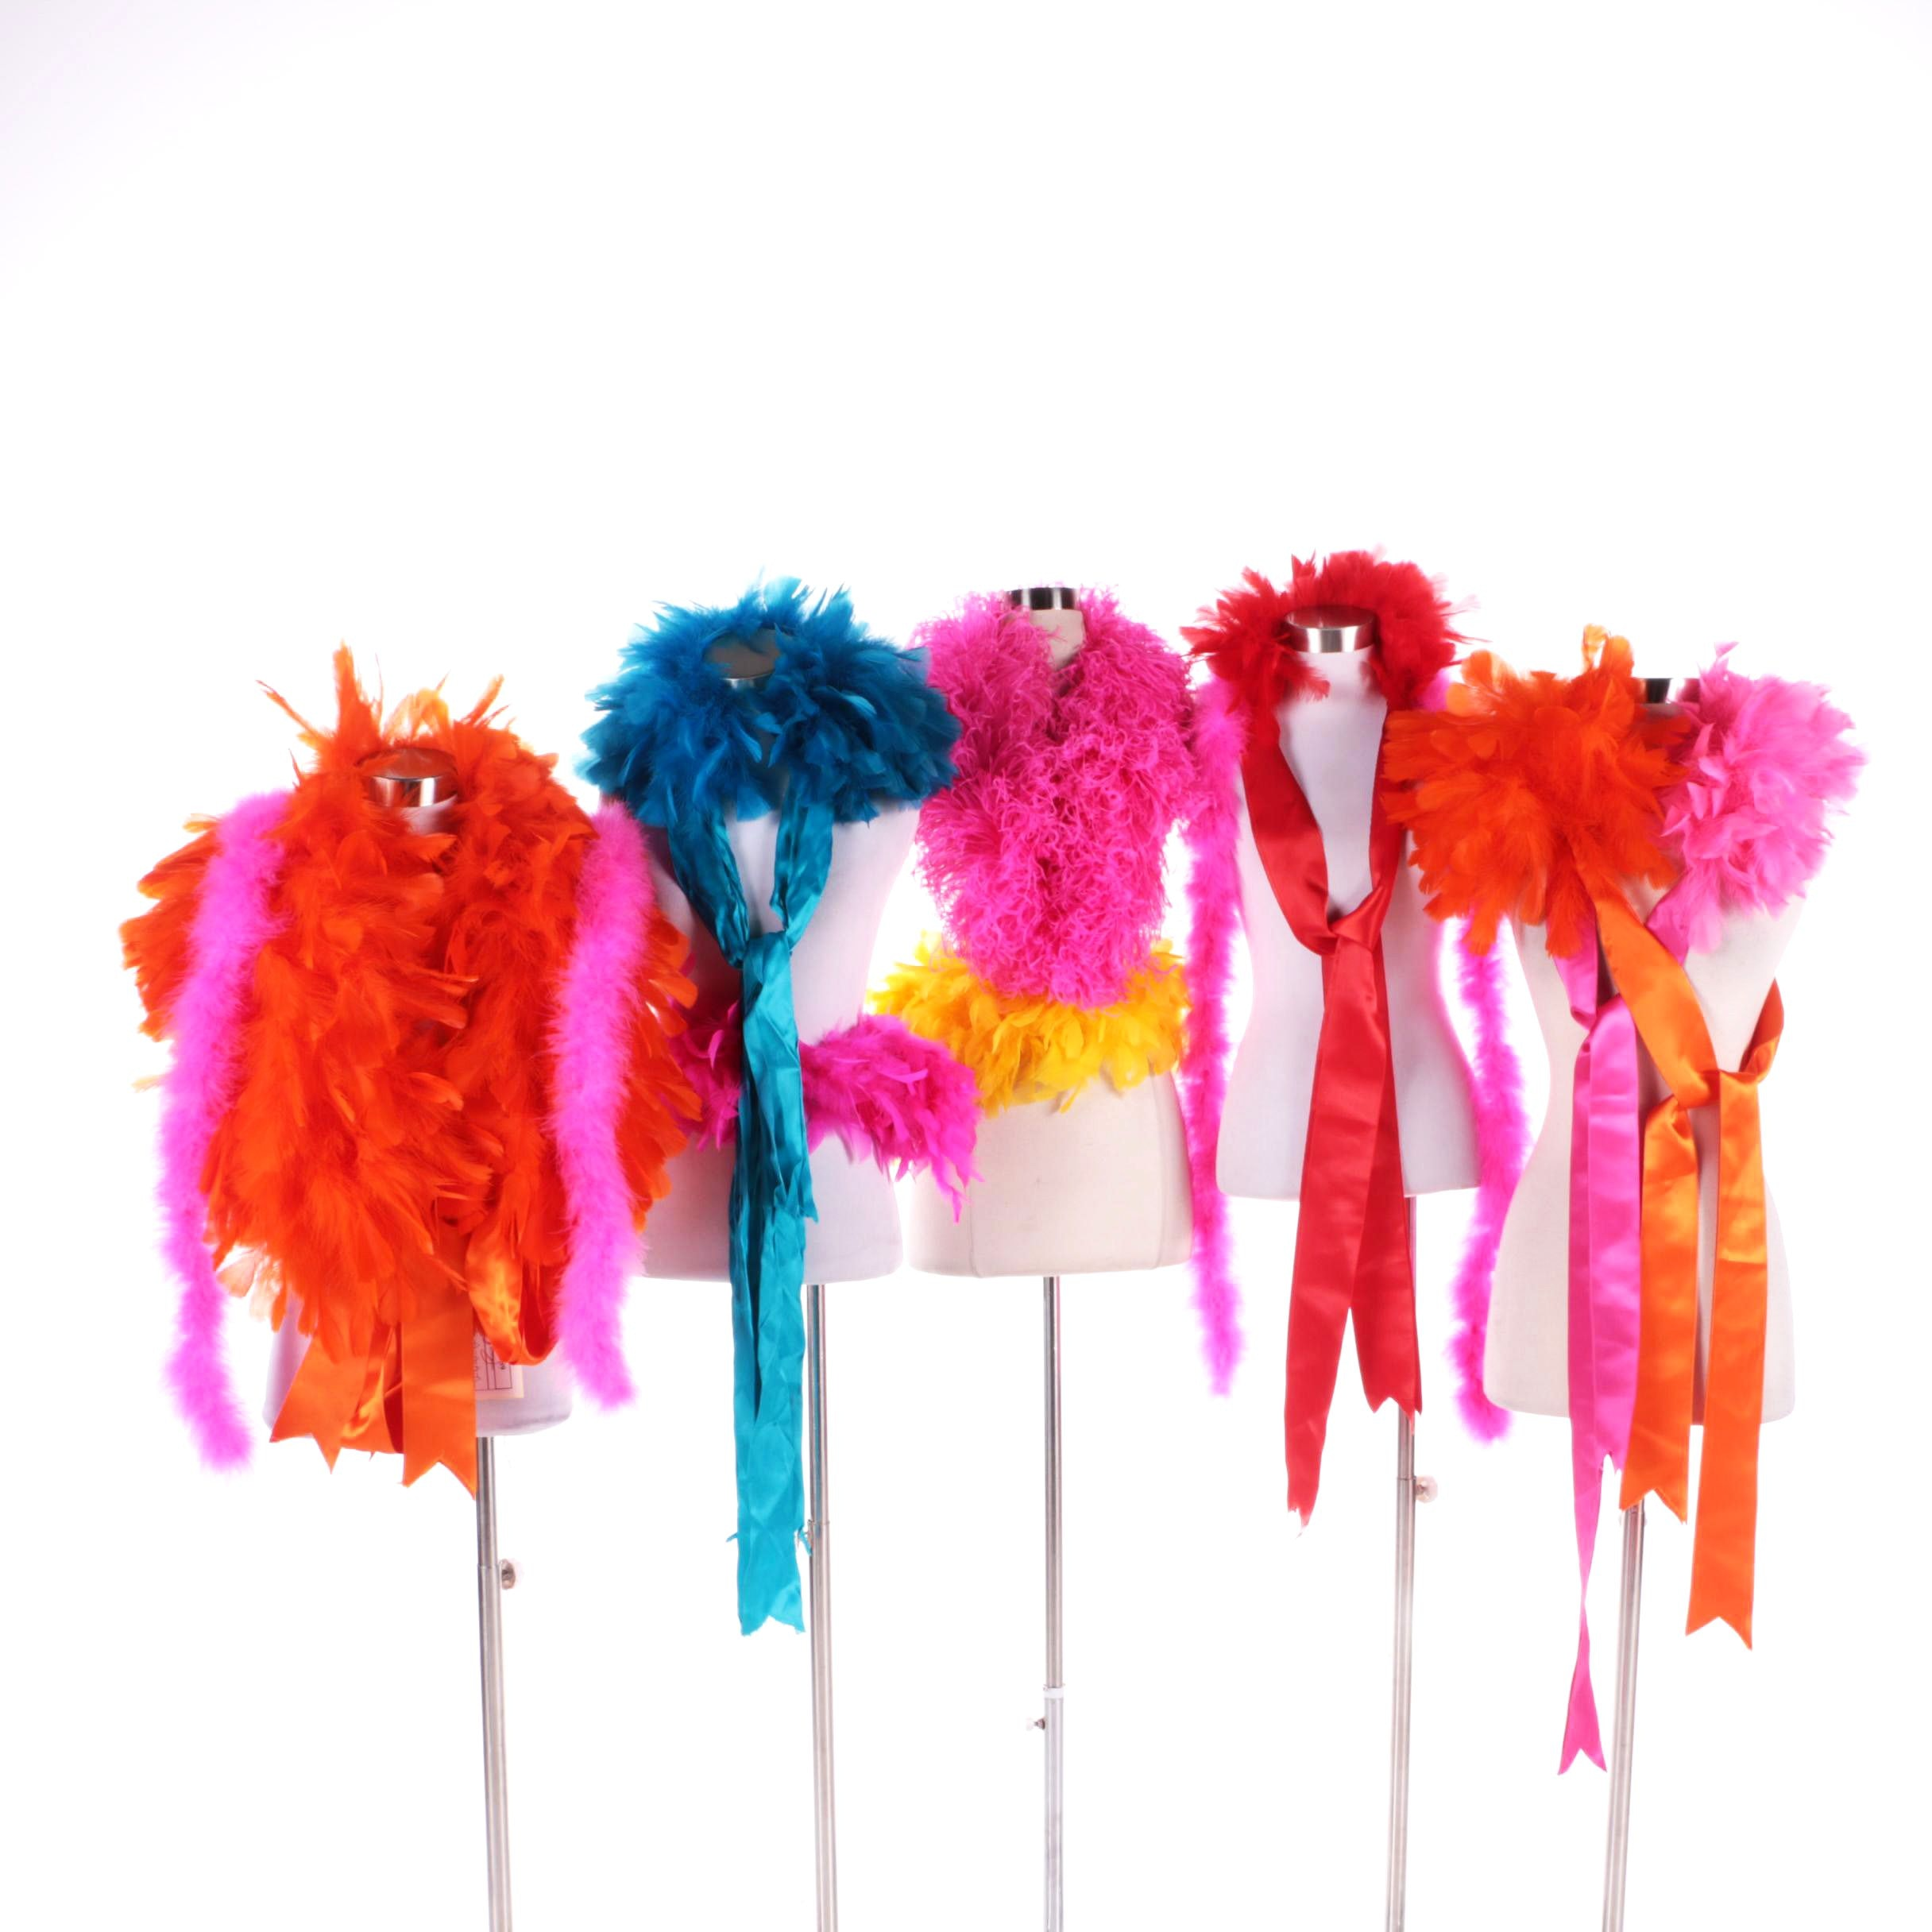 1989 Fall-Winter Patrick Kelly Colorful Vintage Feather Boas